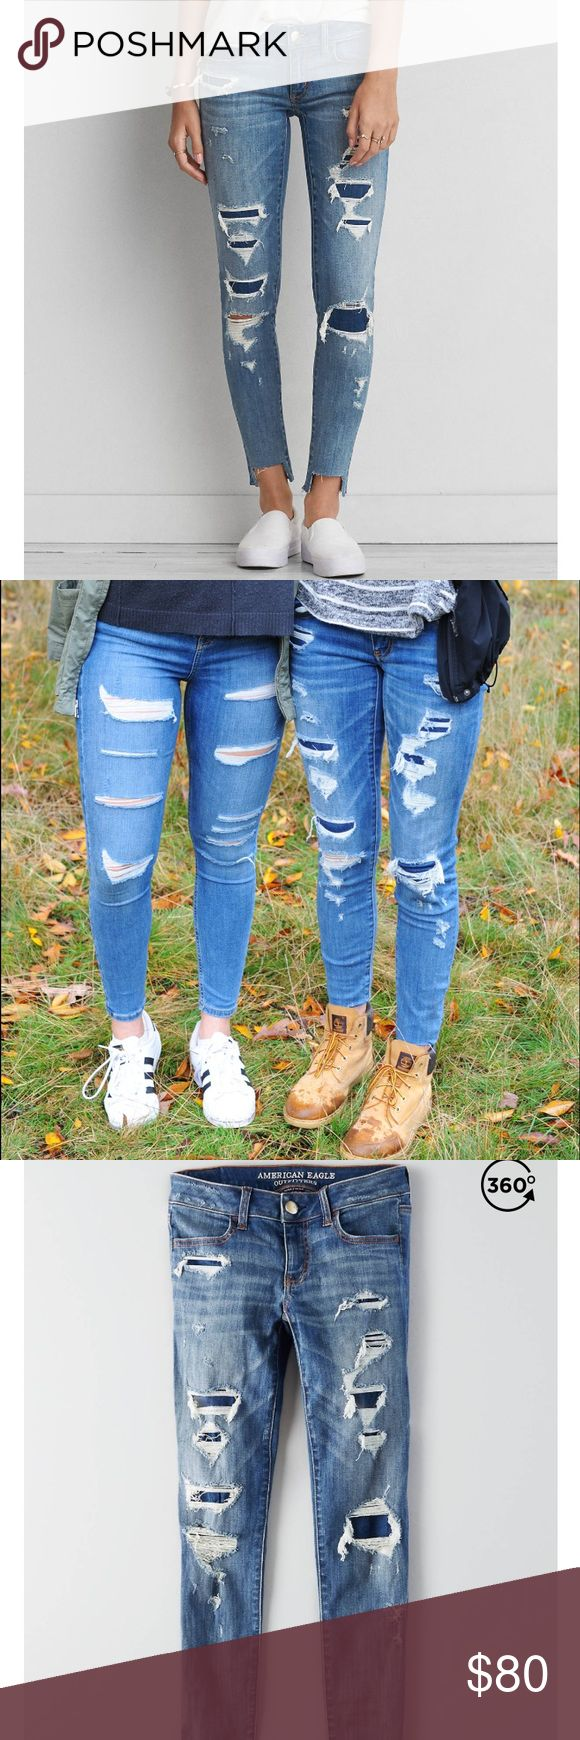 American Eagle Ripped Jeans Ripped denim blue jeans with patches and fray. Washed out. Easily paired with Timberlands or cute sneakers. American Eagle Outfitters Pants Skinny